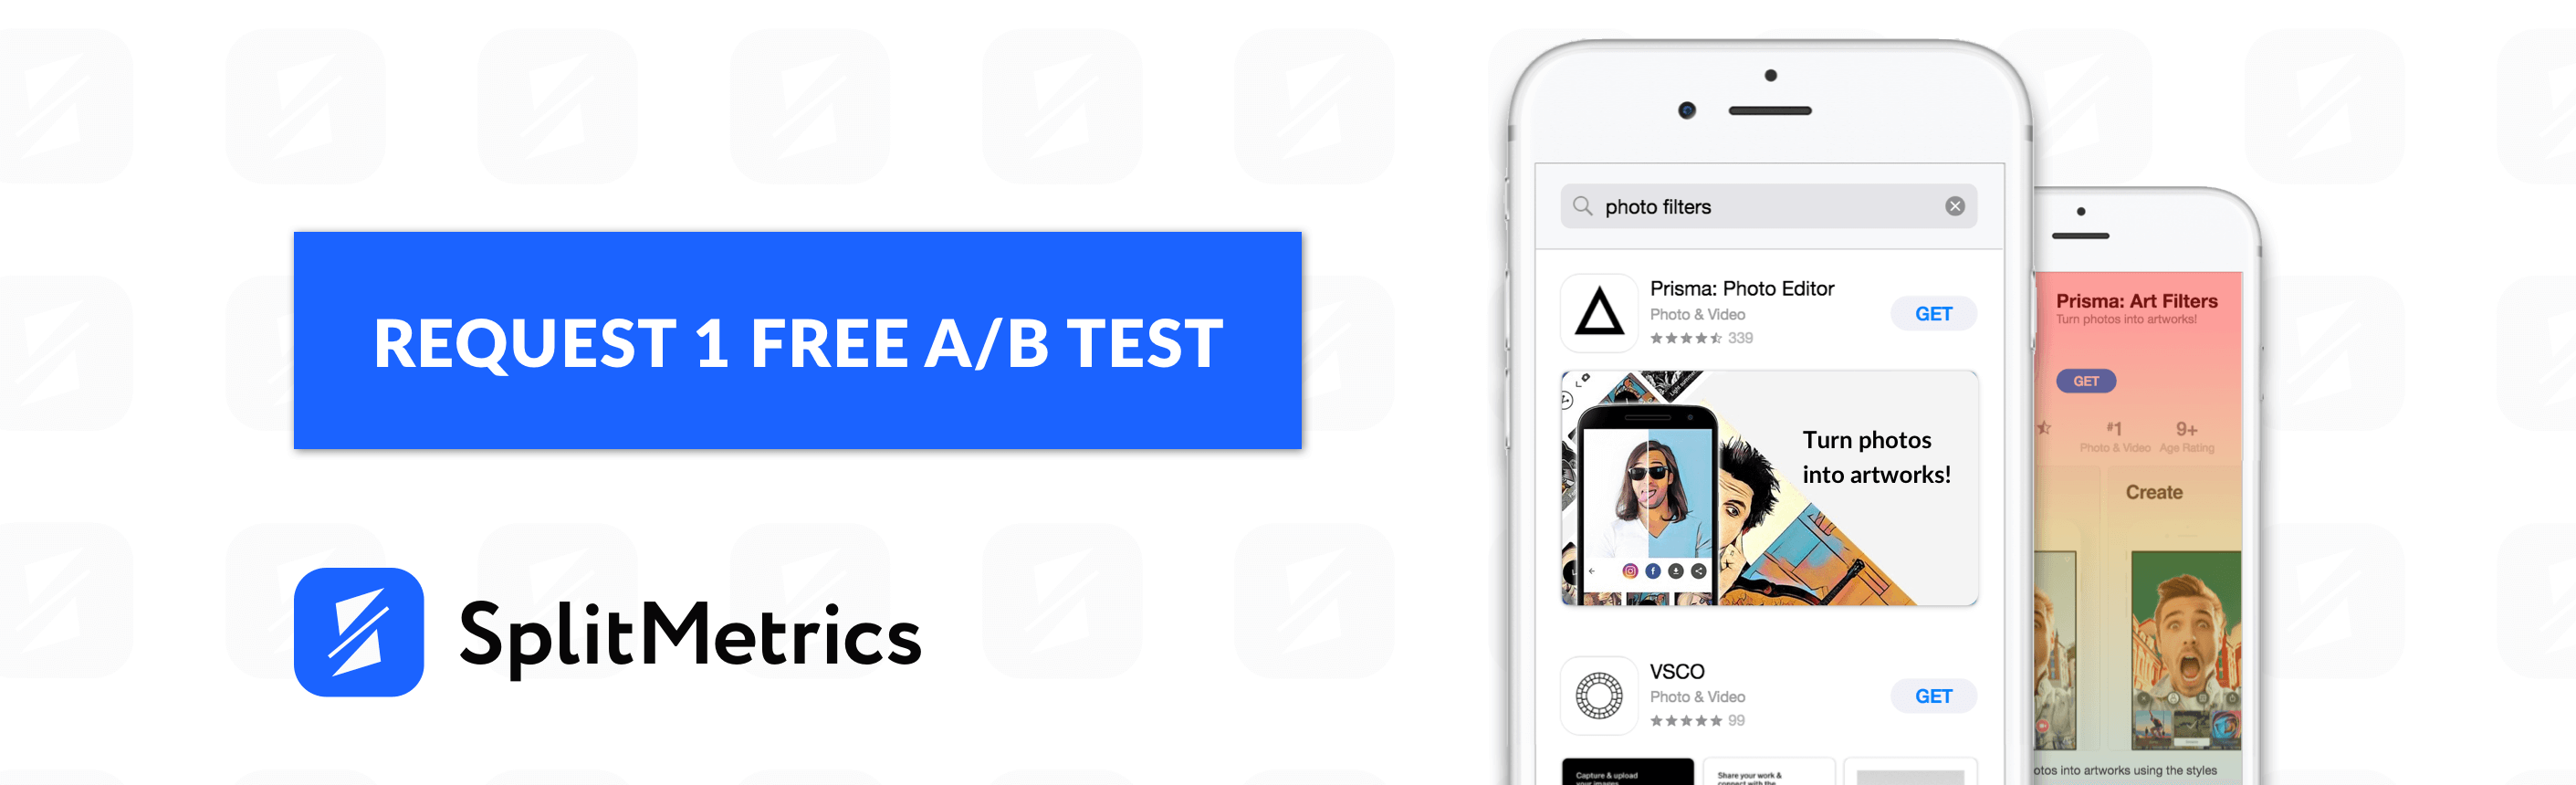 splitmetrics app ab test button